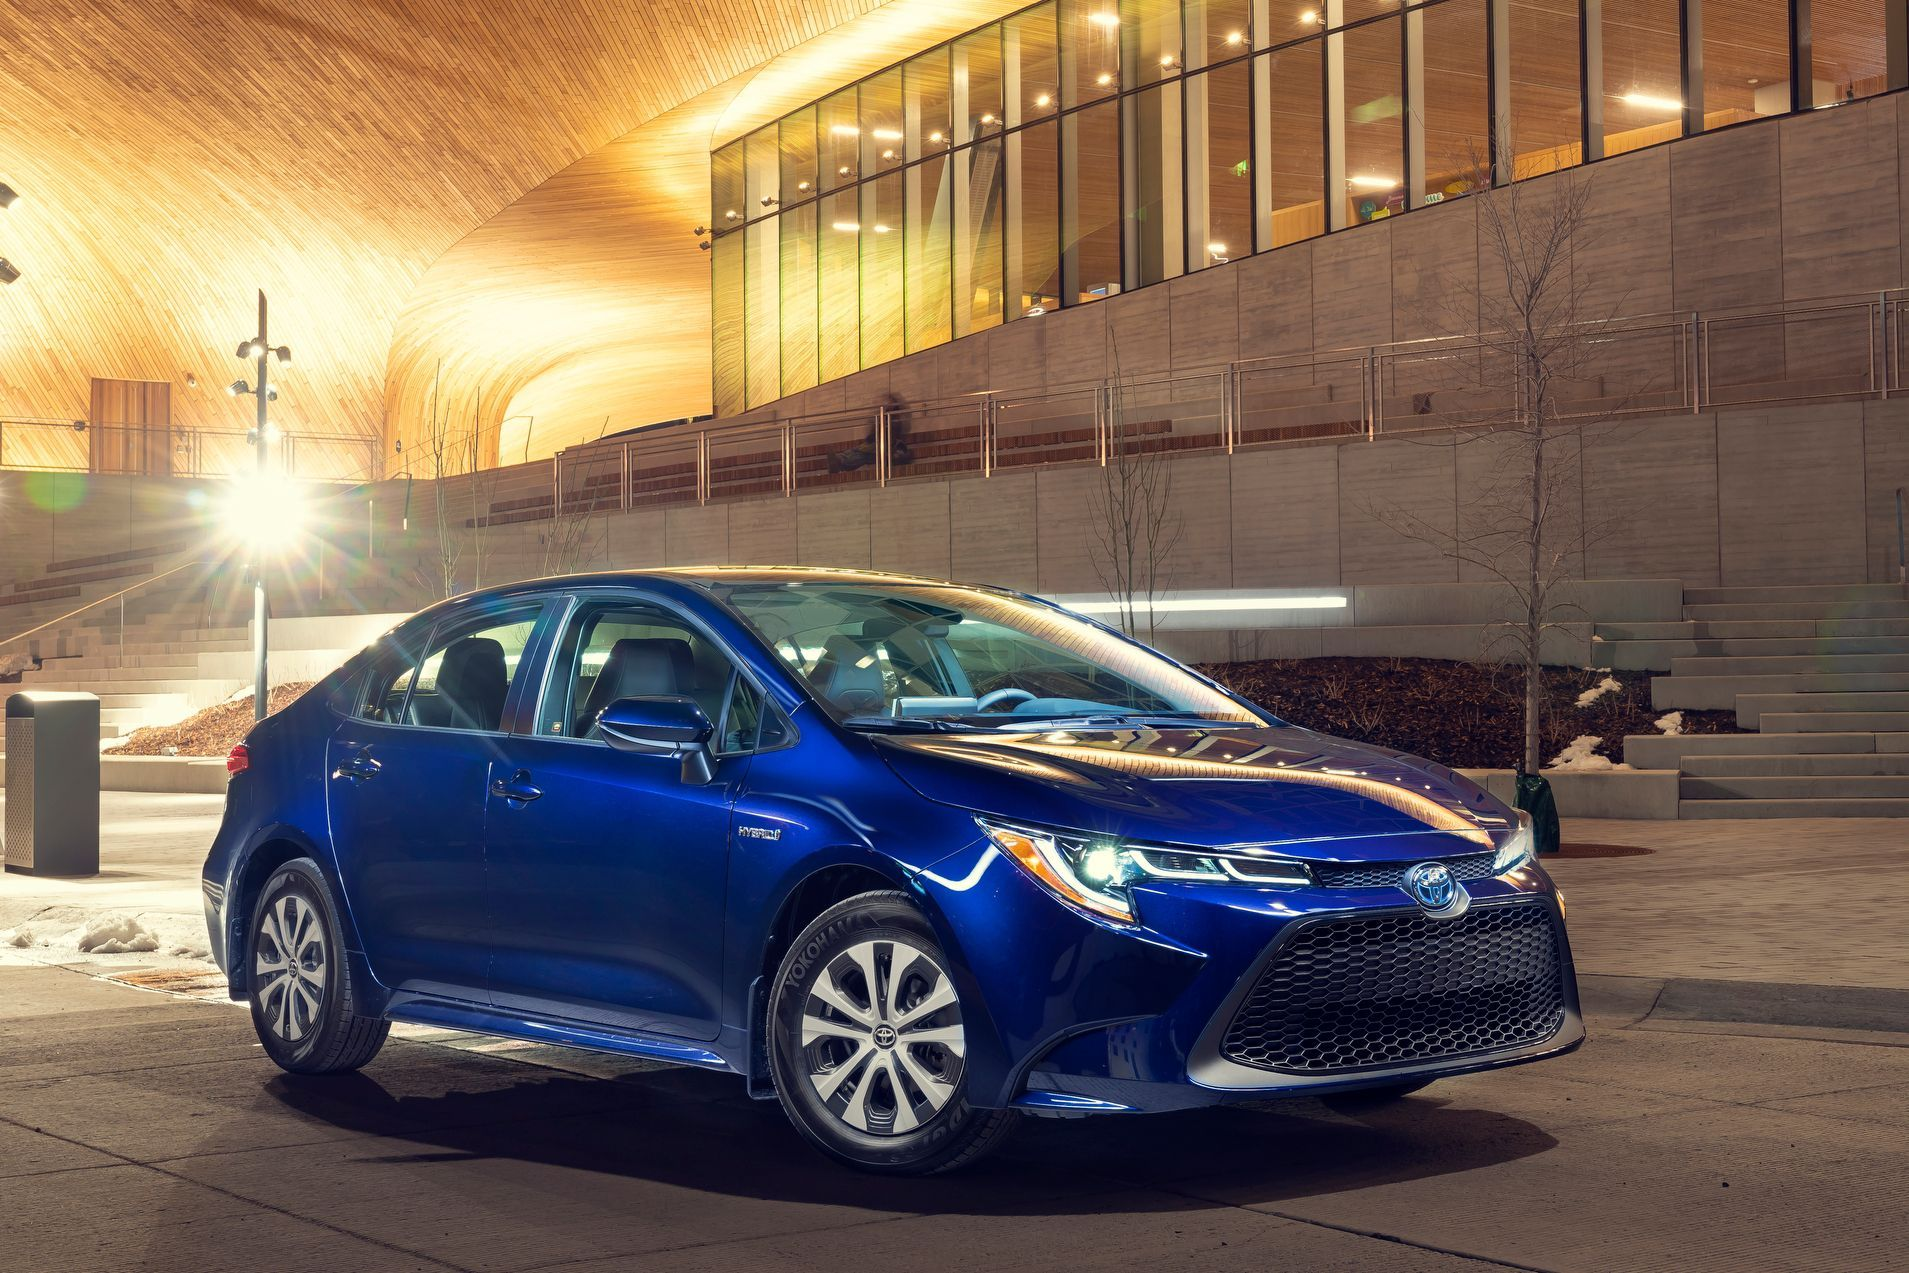 2020 Toyota Corolla Release Date Price Specs And Pictures 2020 Araba